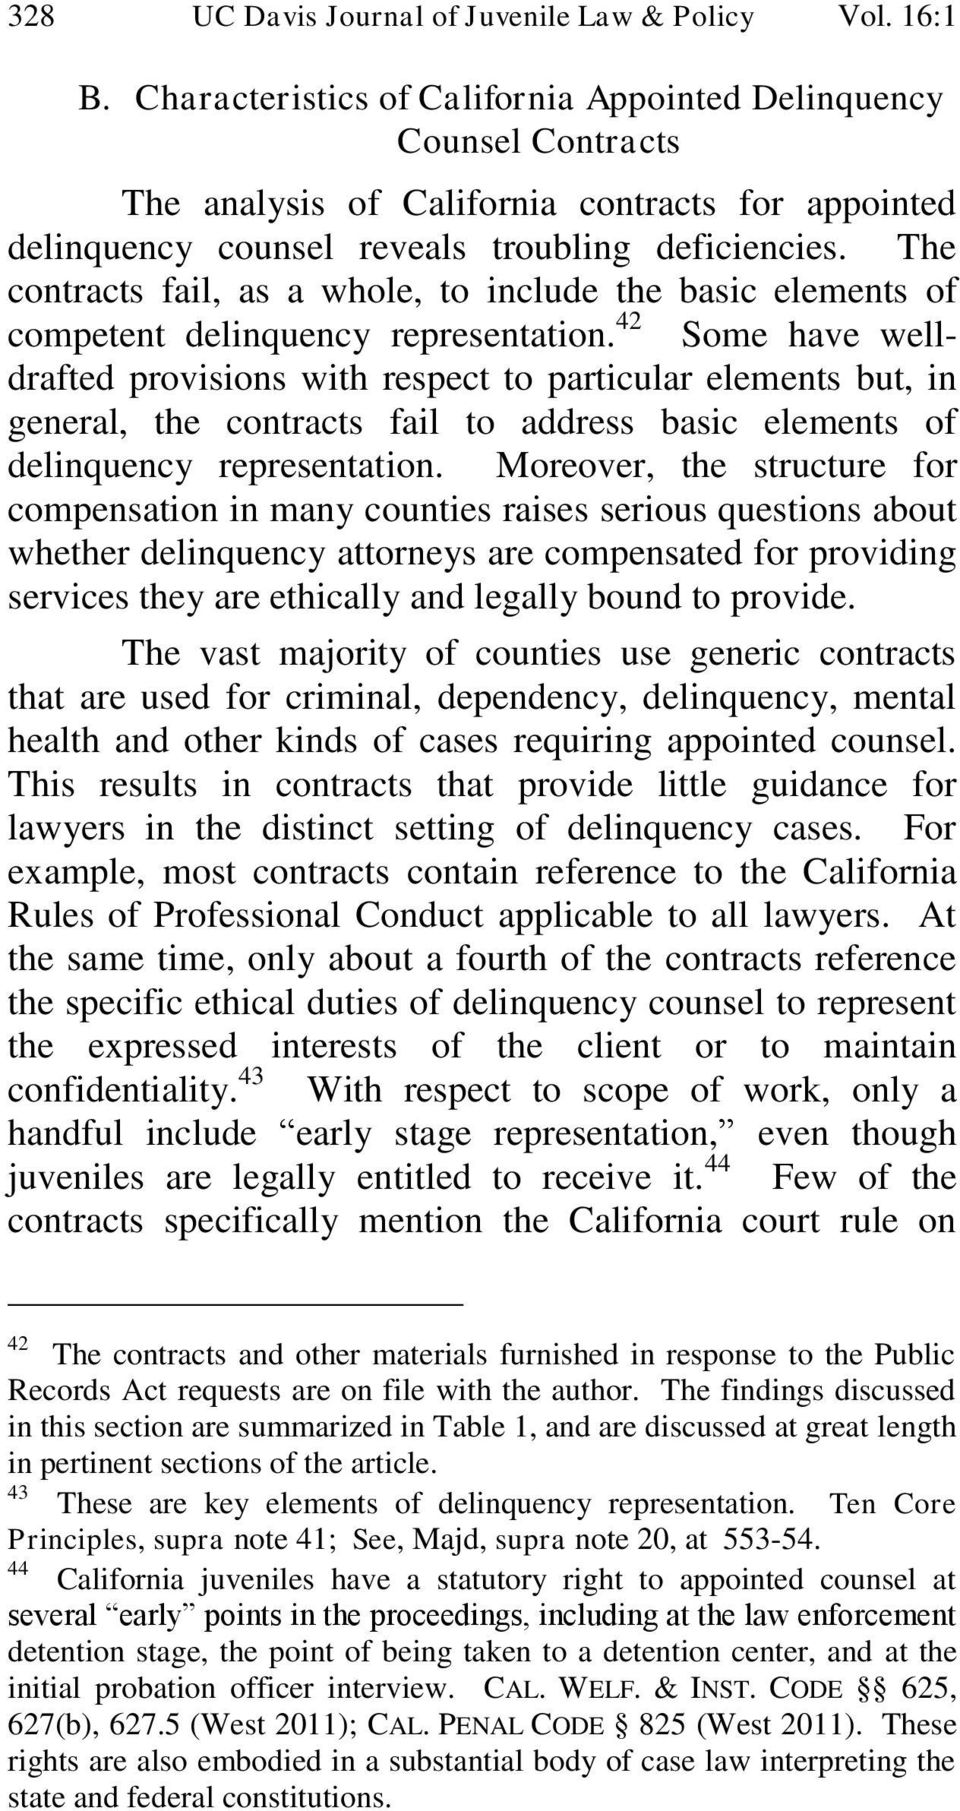 The contracts fail, as a whole, to include the basic elements of competent delinquency representation.